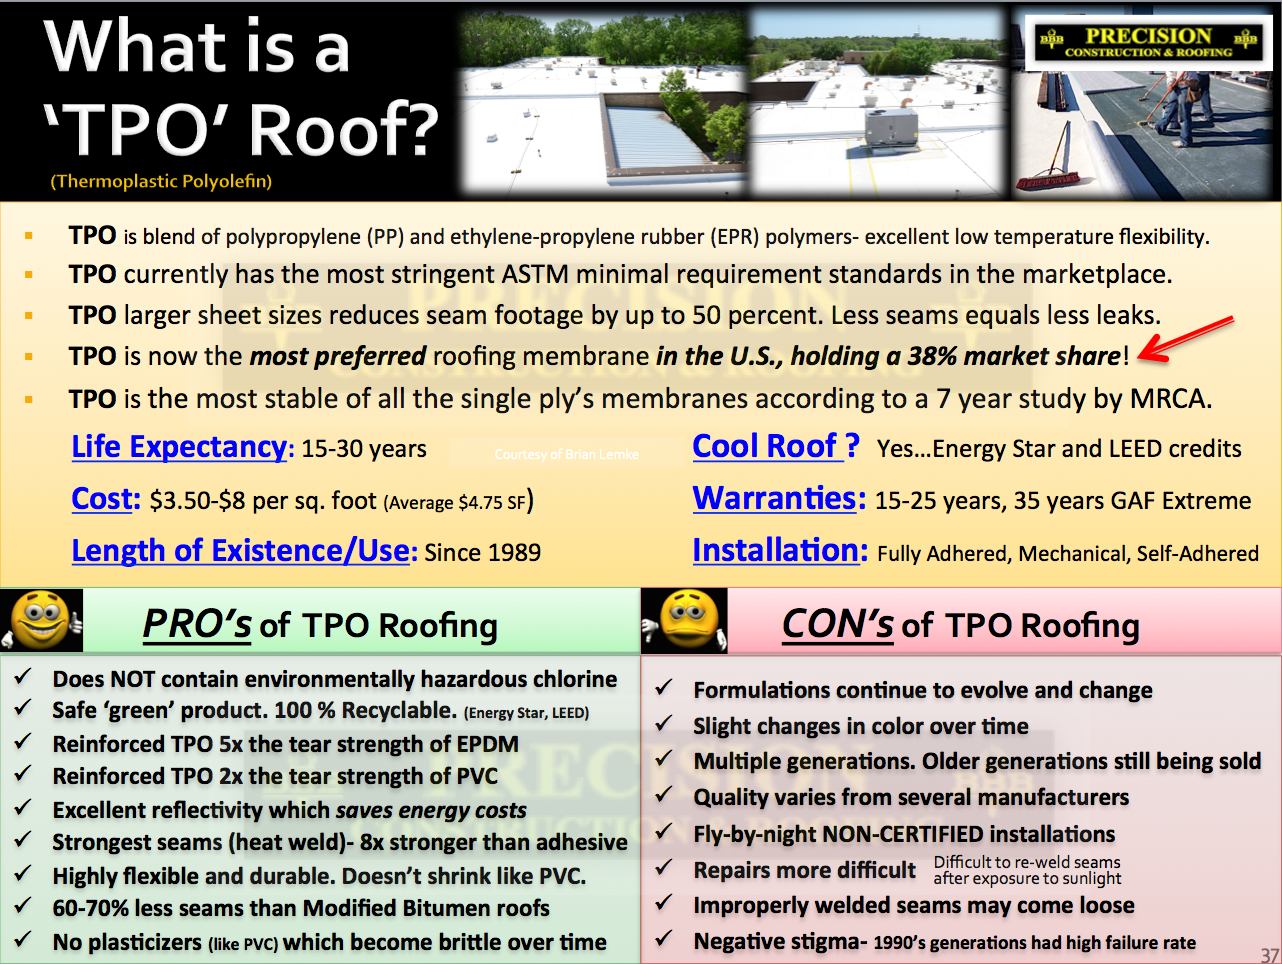 Commercial Roof Tpo Vs Pvc Vs Modified Bitumen Roofing